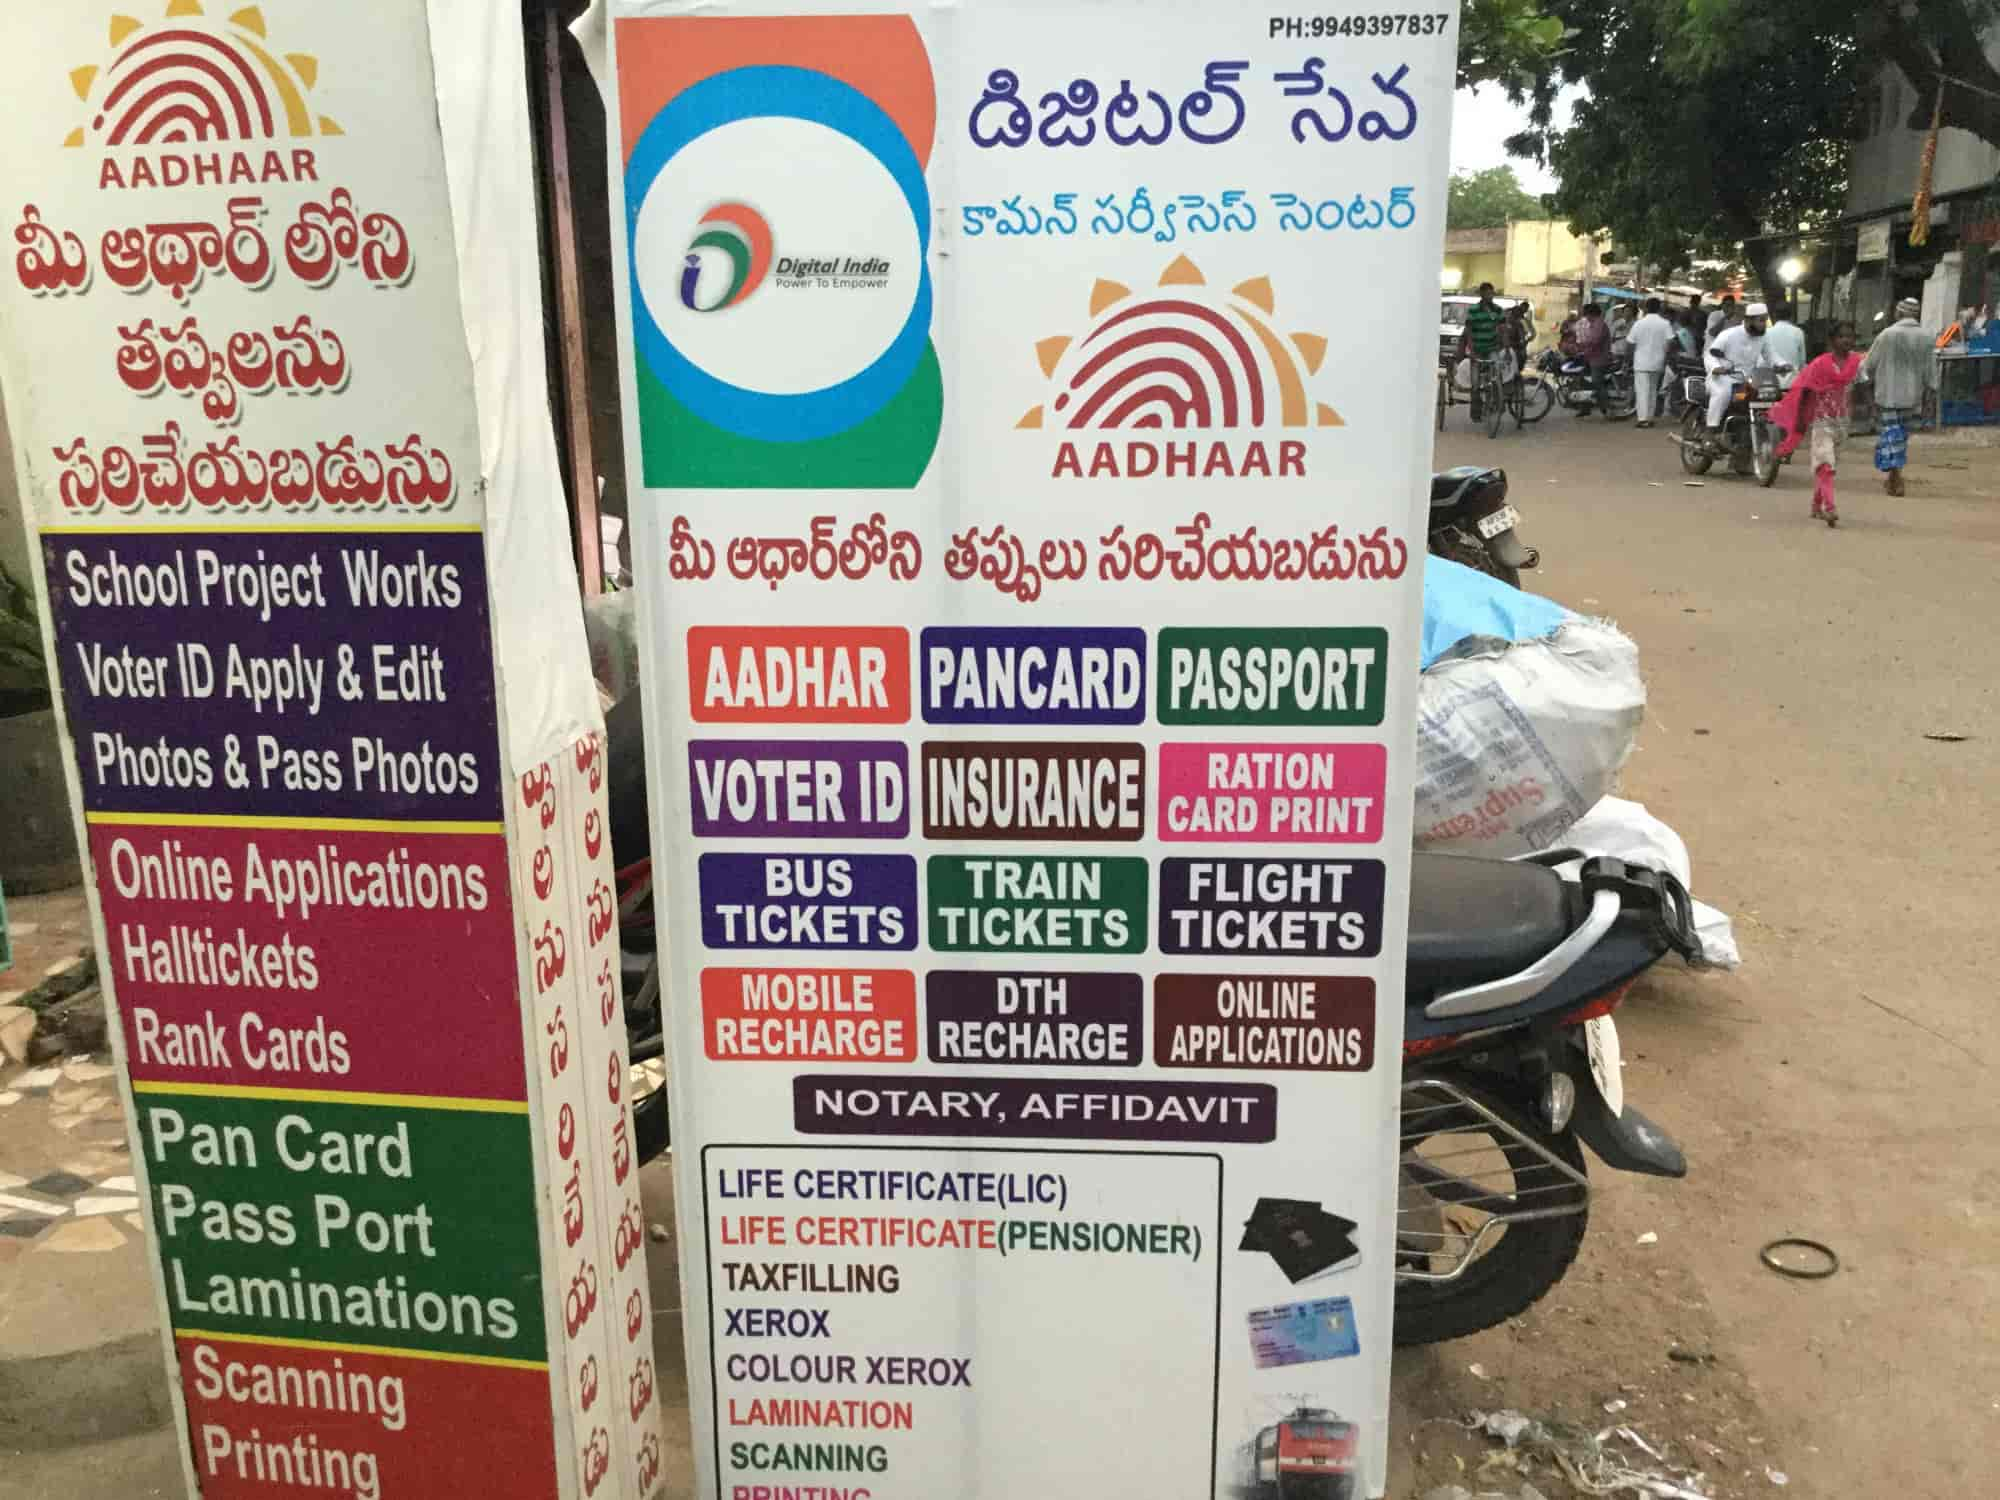 Digital SEVA CSC, OPP MARCUS MASJID - Aadhaar Card Agents in